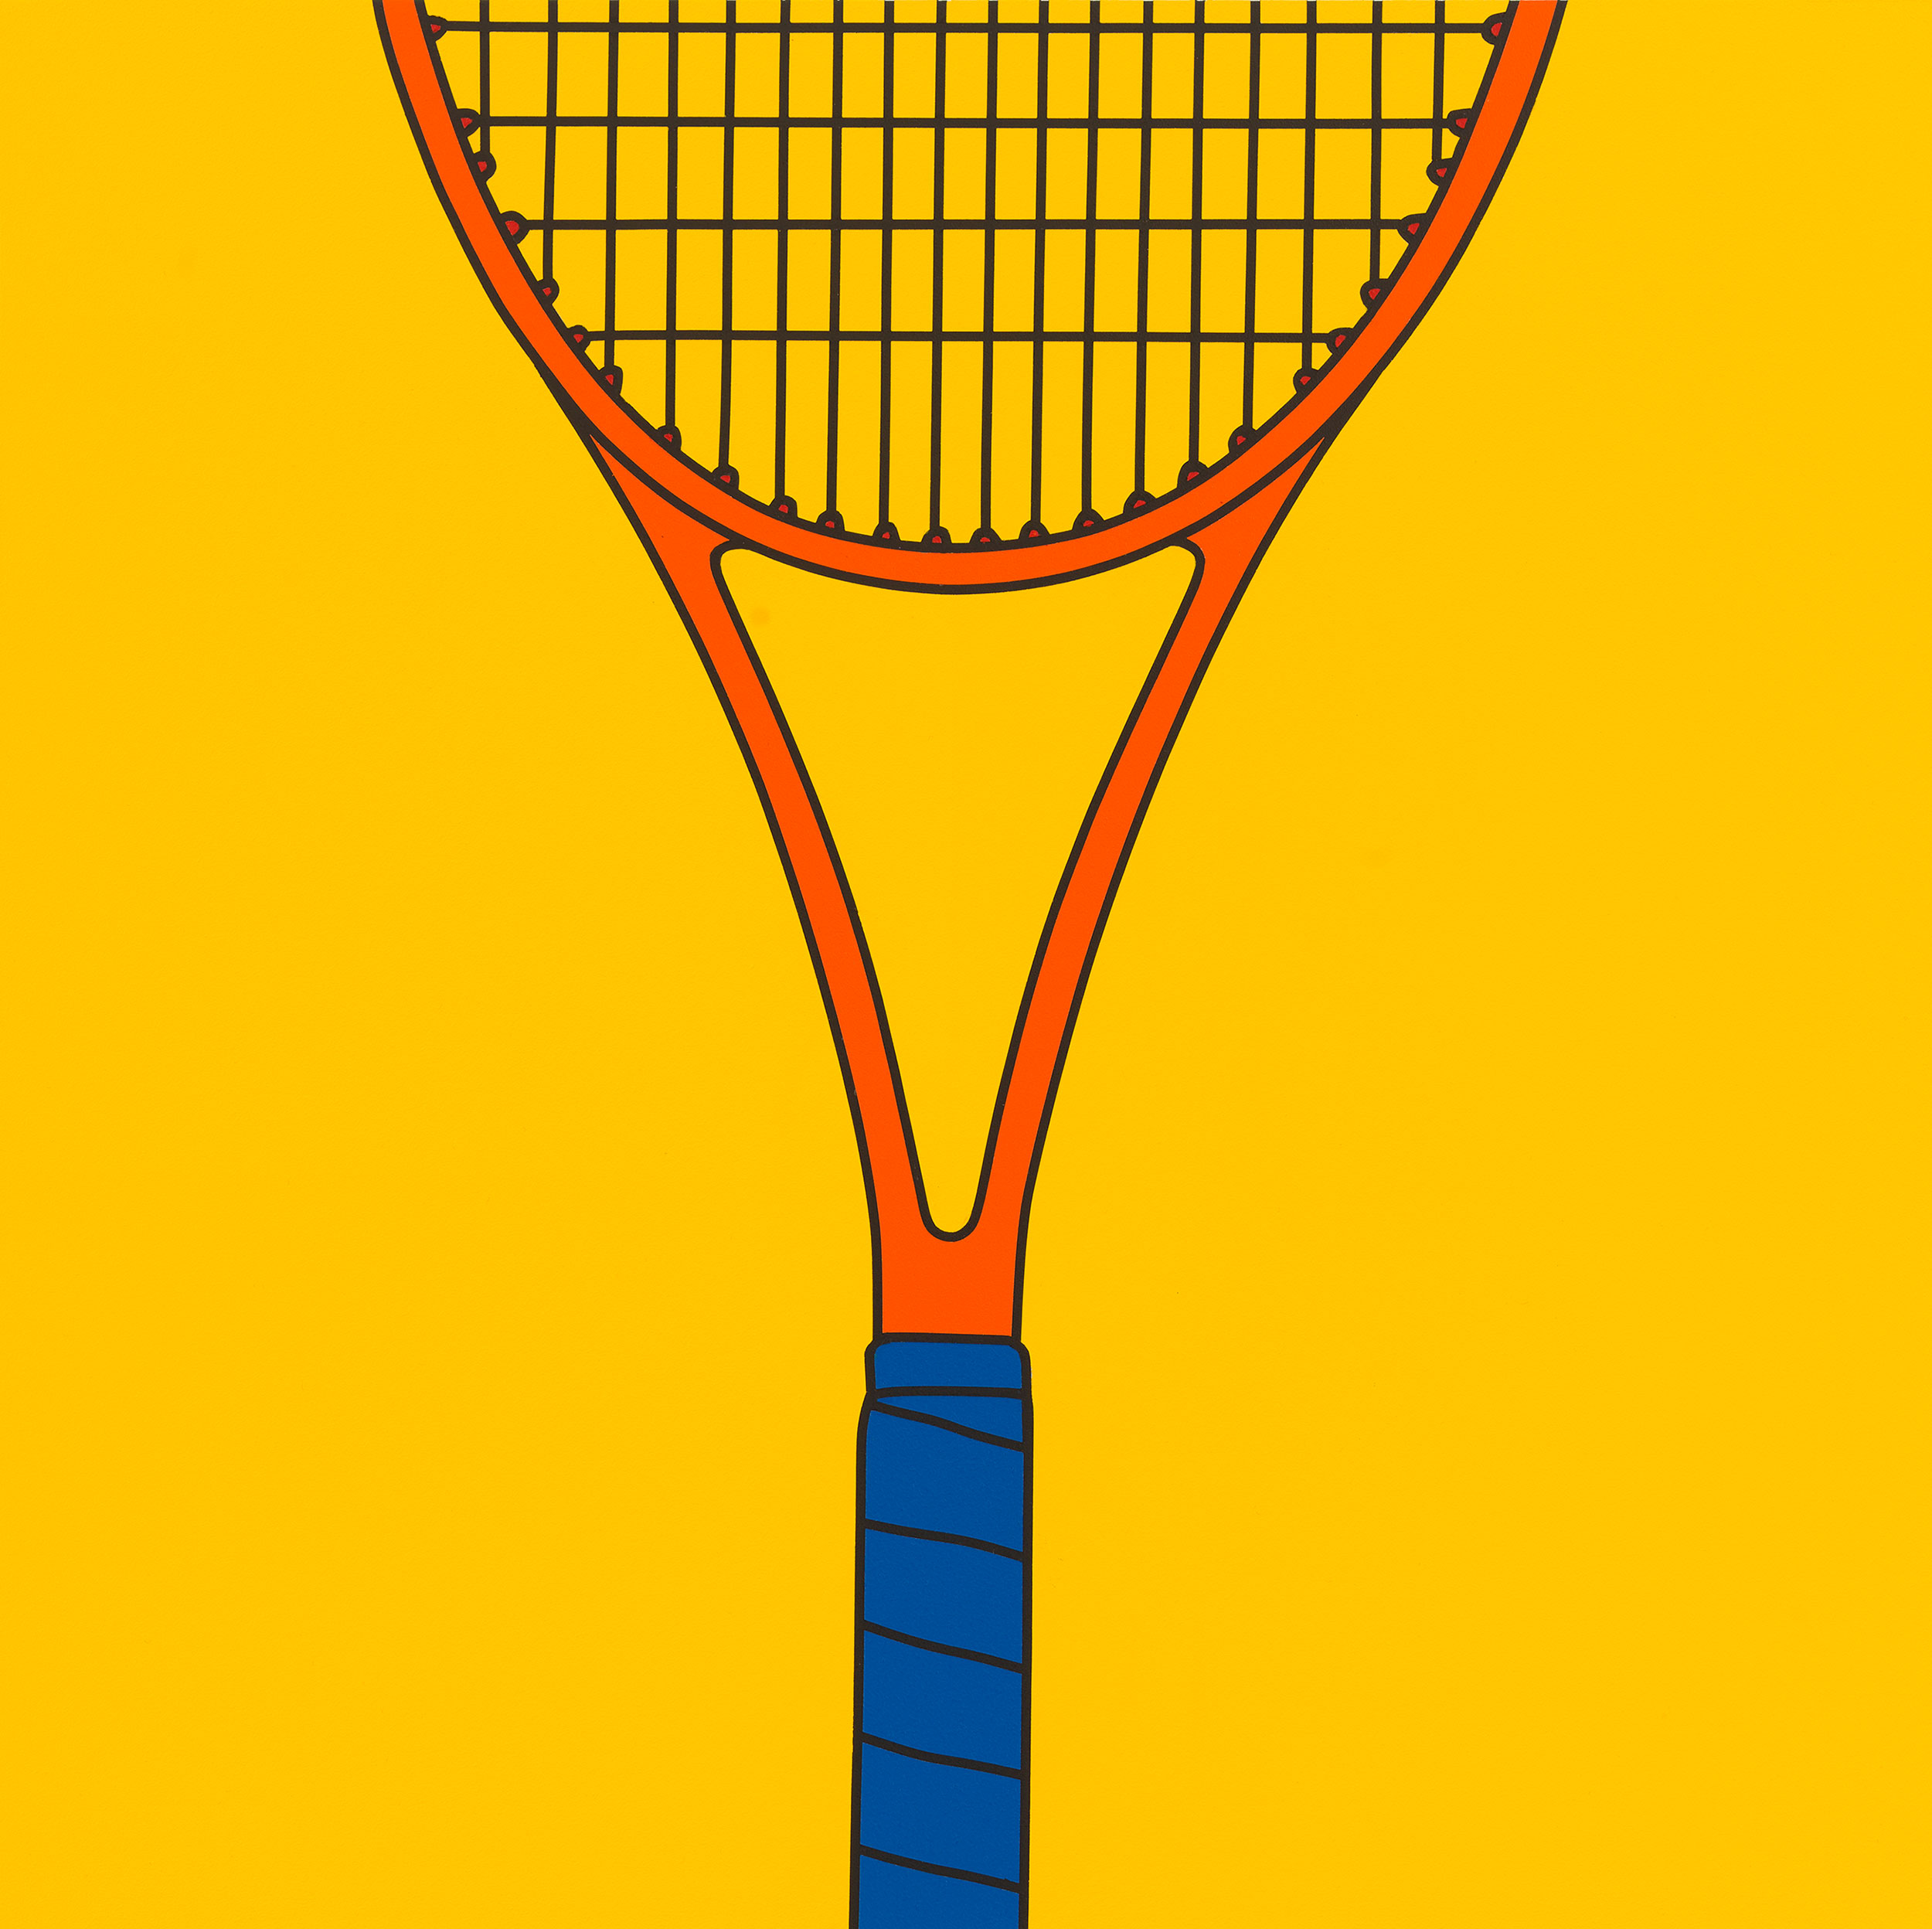 Untitled (tennis racquet fragment yellow), 2017